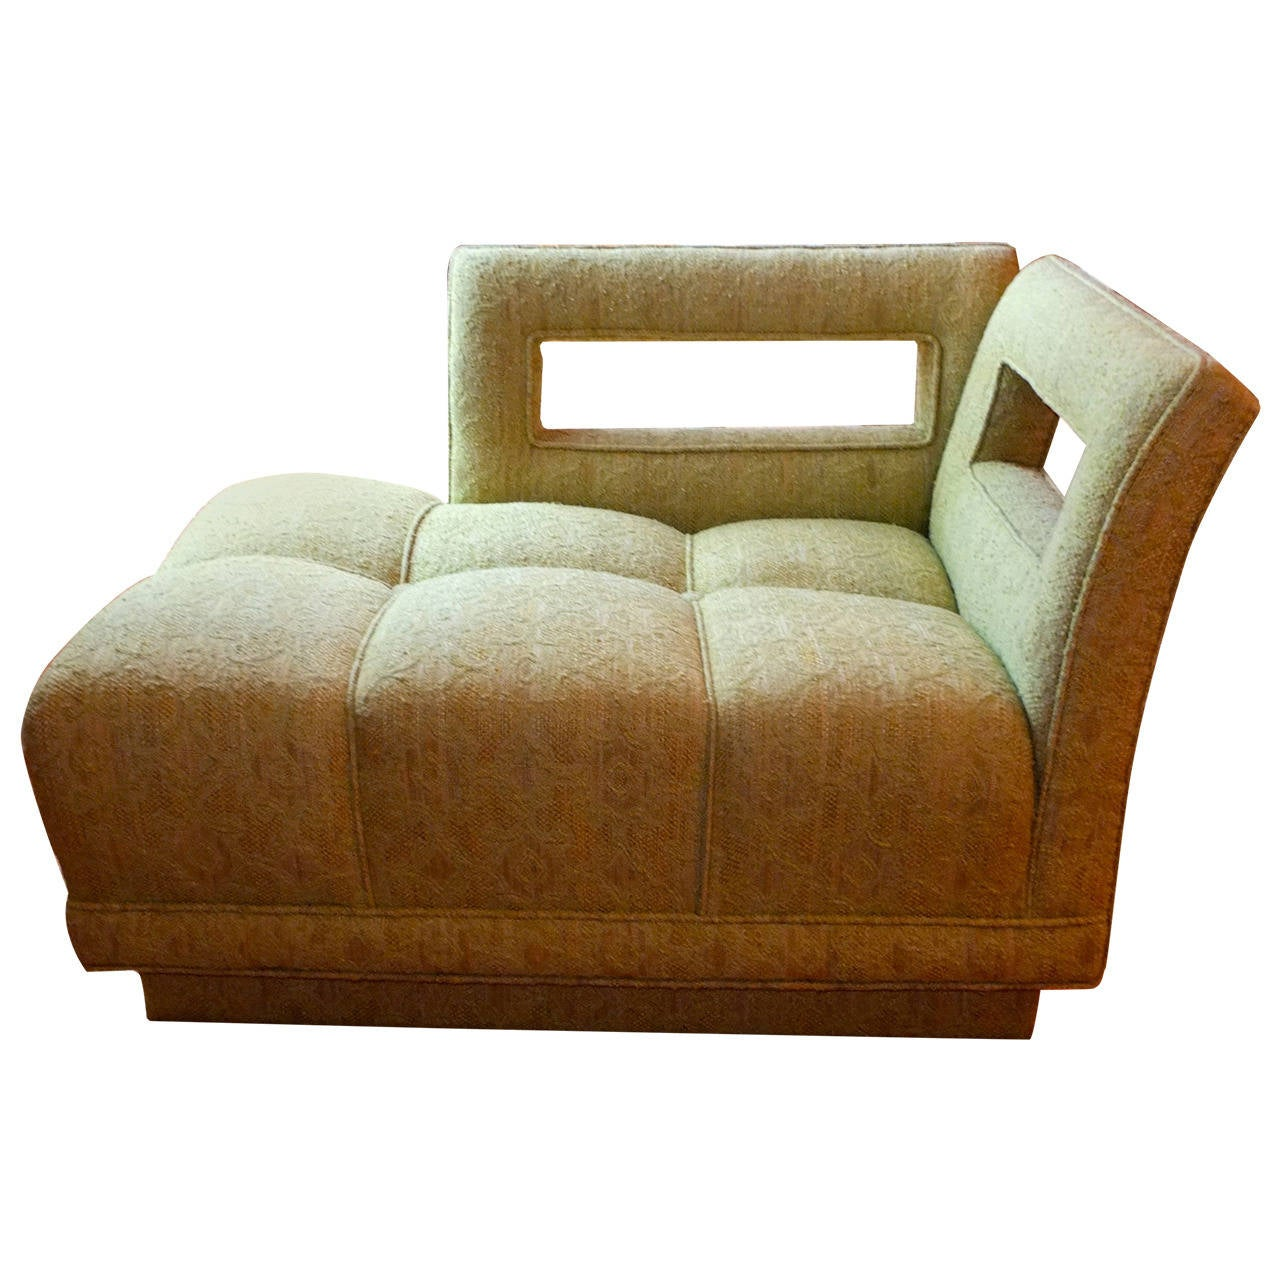 steelcase sofa platner delivery service 1940s grosfeld house for sale at 1stdibs